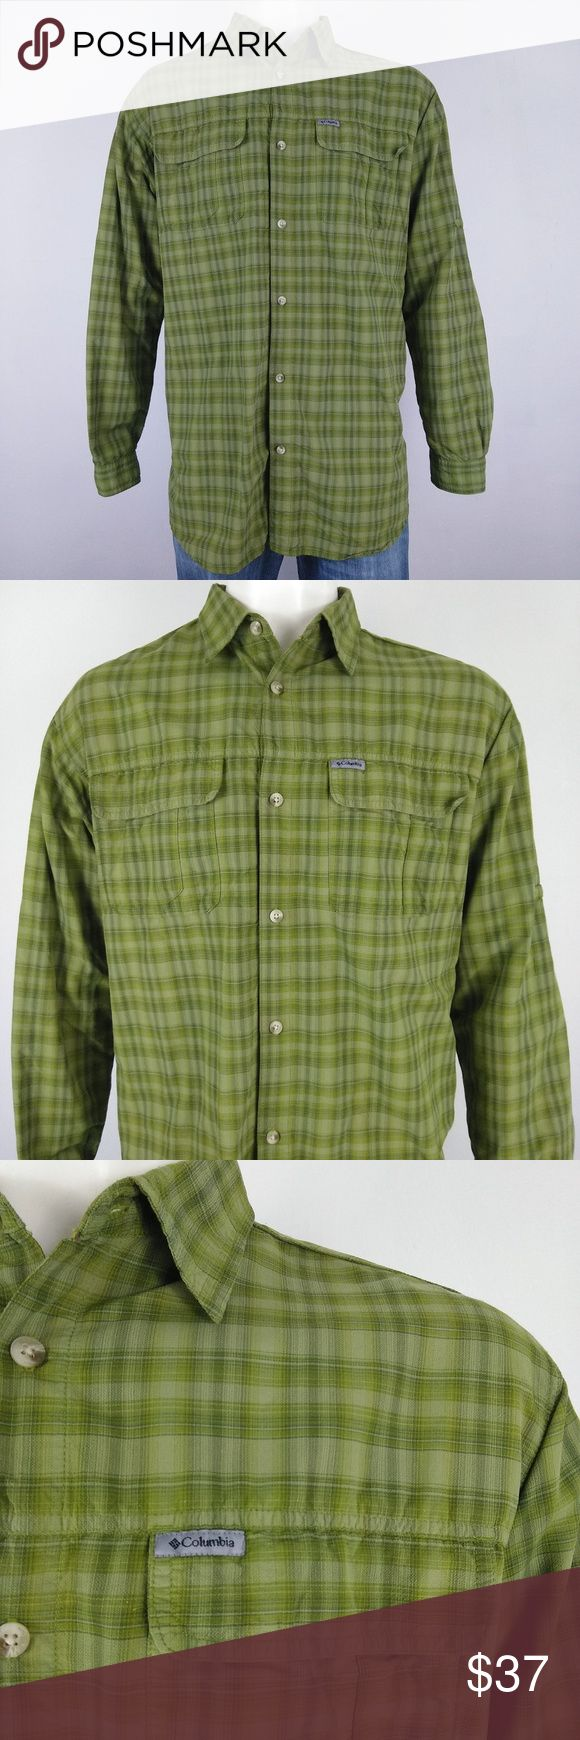 Columbia NWOT green outdoor, vented men's shirt Beautiful new without tags, never worn, plaid green long sleeve outdoor hiking shirt, with vented mesh to keep you cool. Size XLT and made of 100% Nylon.   Underarm to Underarm 25.5 in. (flat) Shoulder to Shoulder 20 in. (flat) Sleeve 26.5 in.  Length 36 in. Columbia Shirts Casual Button Down Shirts